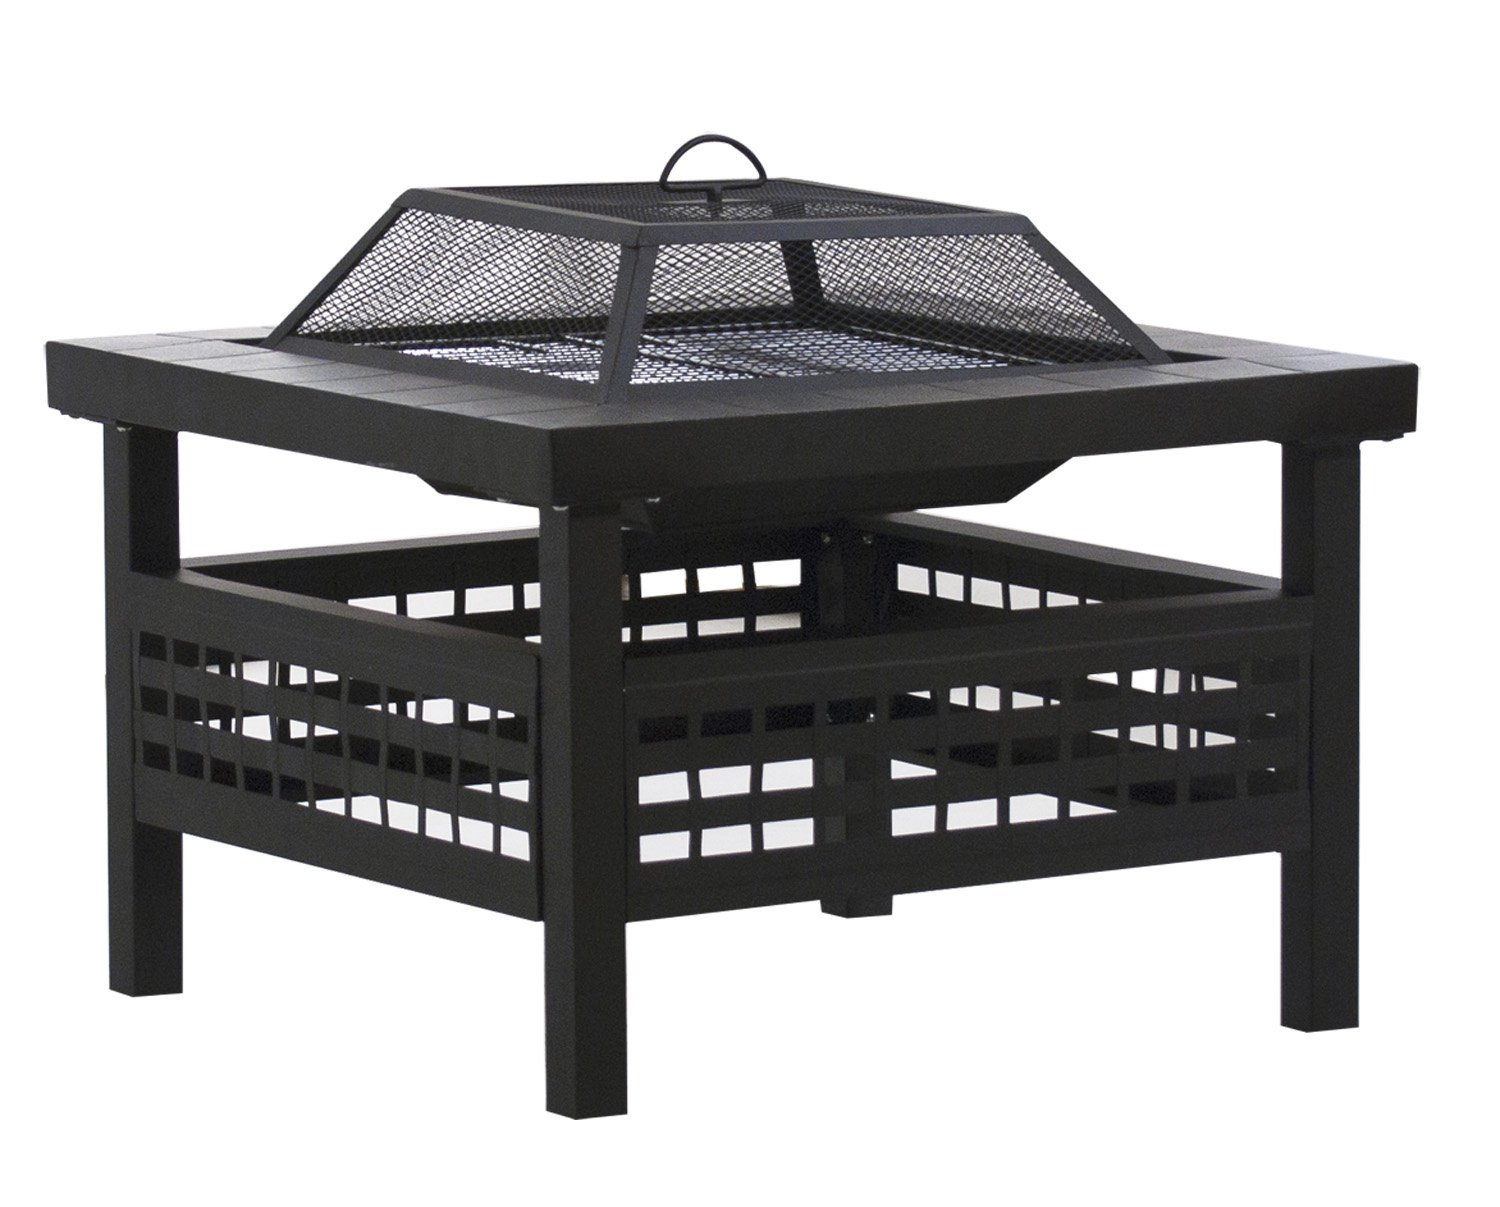 DeckMate 30605 Sonoma Outdoor Steel Fire Pit - Steel construction with high temperature resistant finish For burning wood and artificial logs Log grate and fire tool included - patio, fire-pits-outdoor-fireplaces, outdoor-decor - 71t0WGM3lEL -